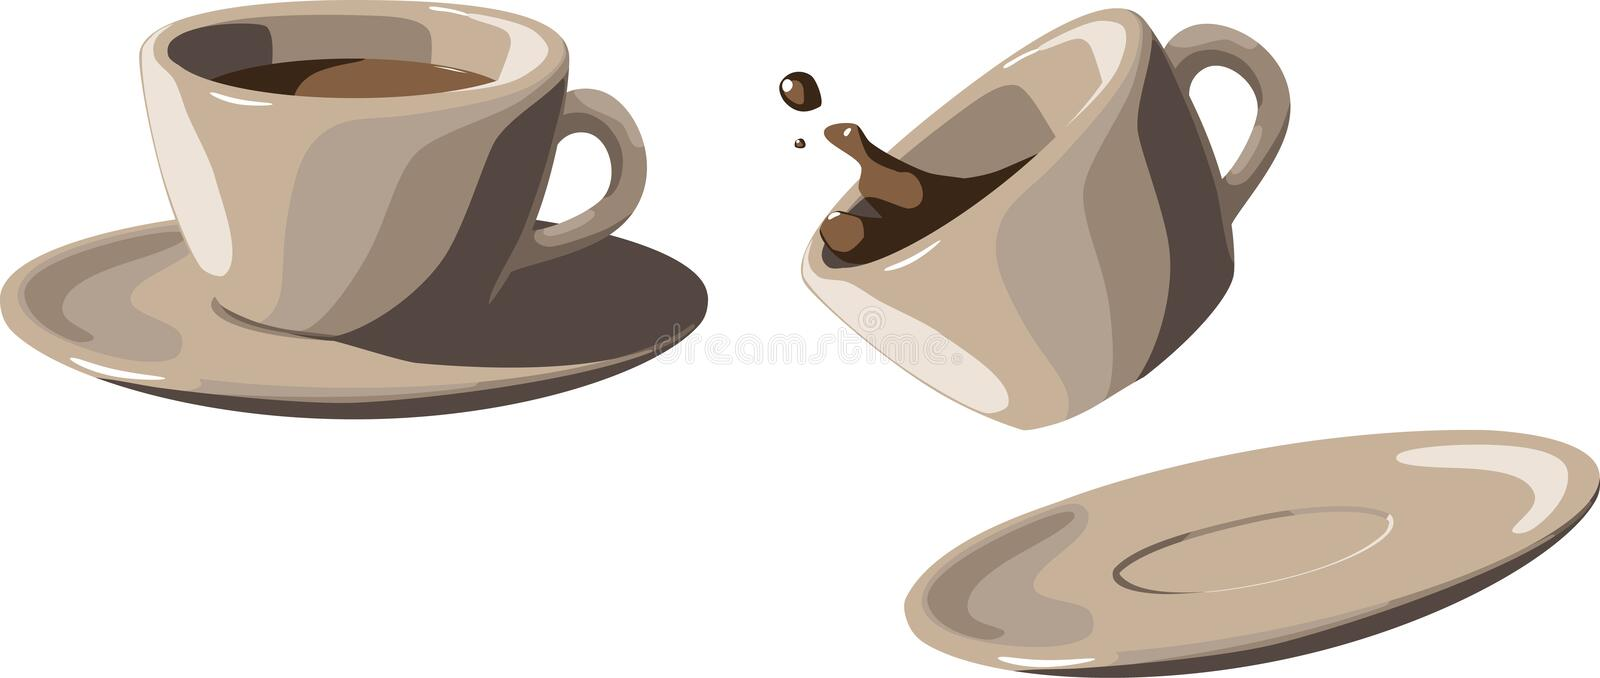 Download Coffee Cups Stock Photography - Image: 17844442